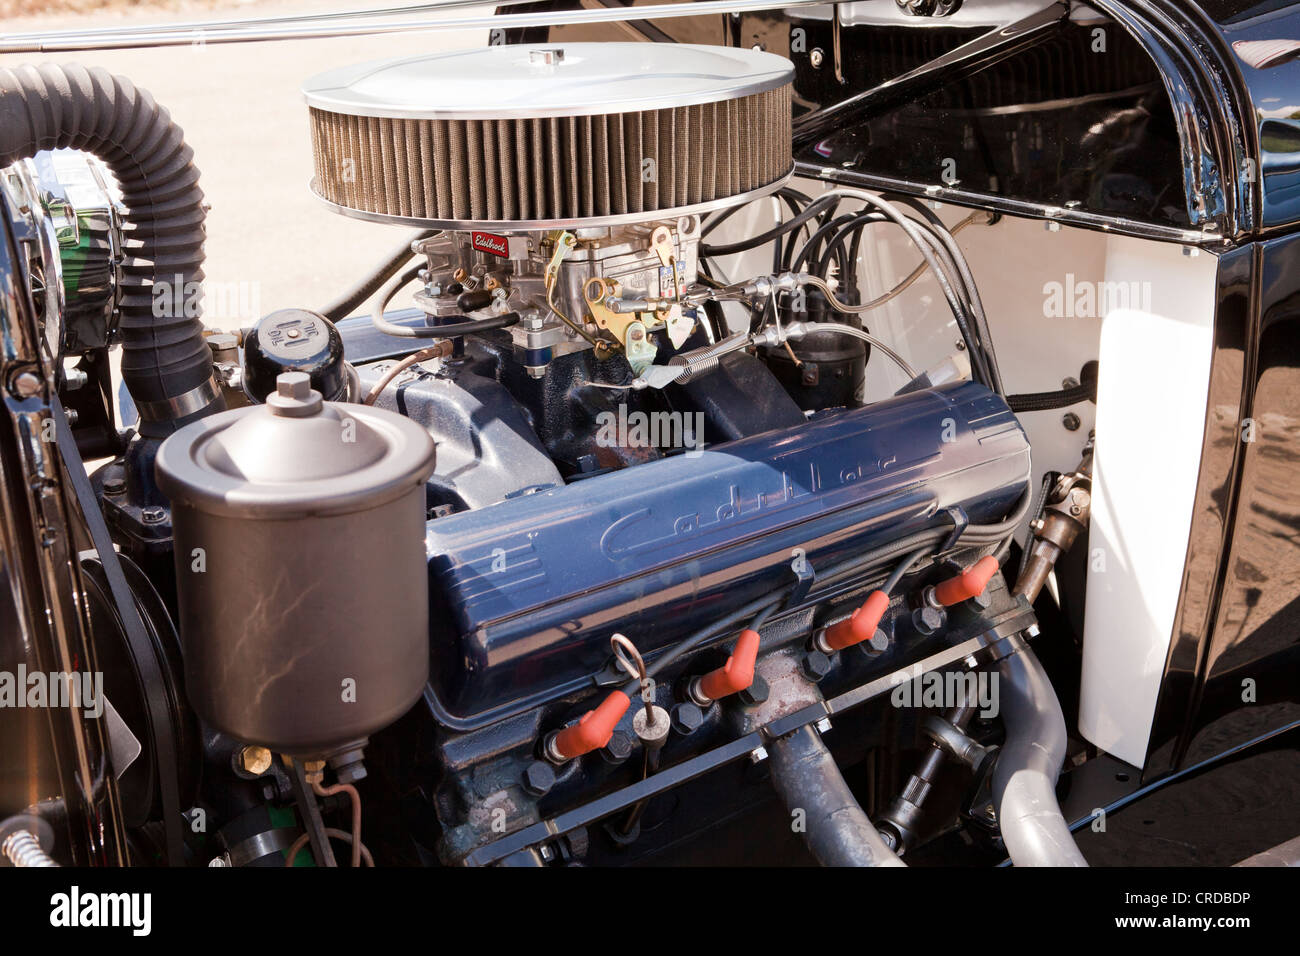 Closeup detail of carburetor engine - Stock Image